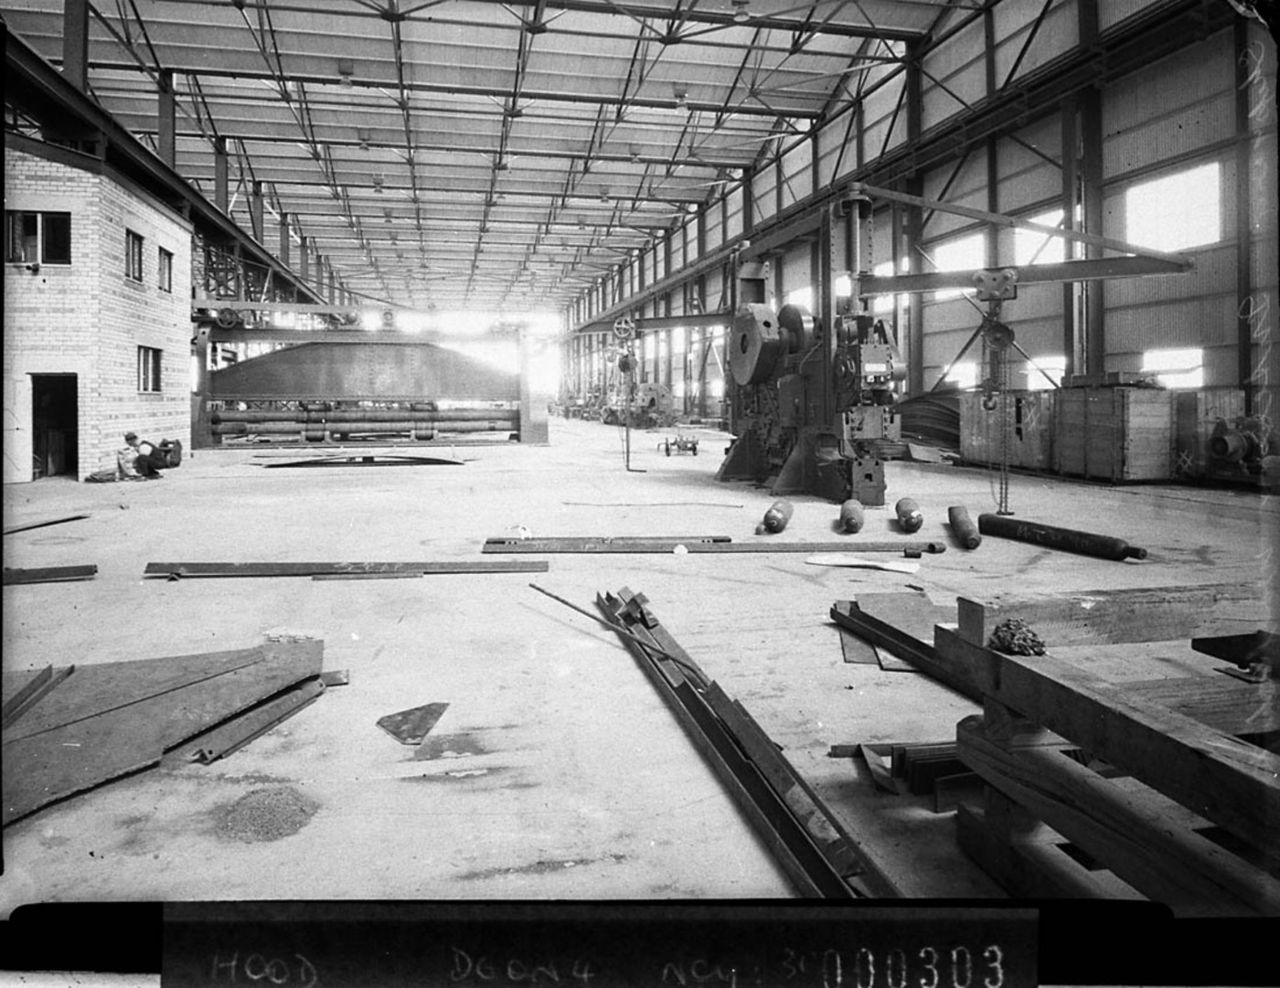 File:SLNSW 12795 Interior of a large factory under construction ...